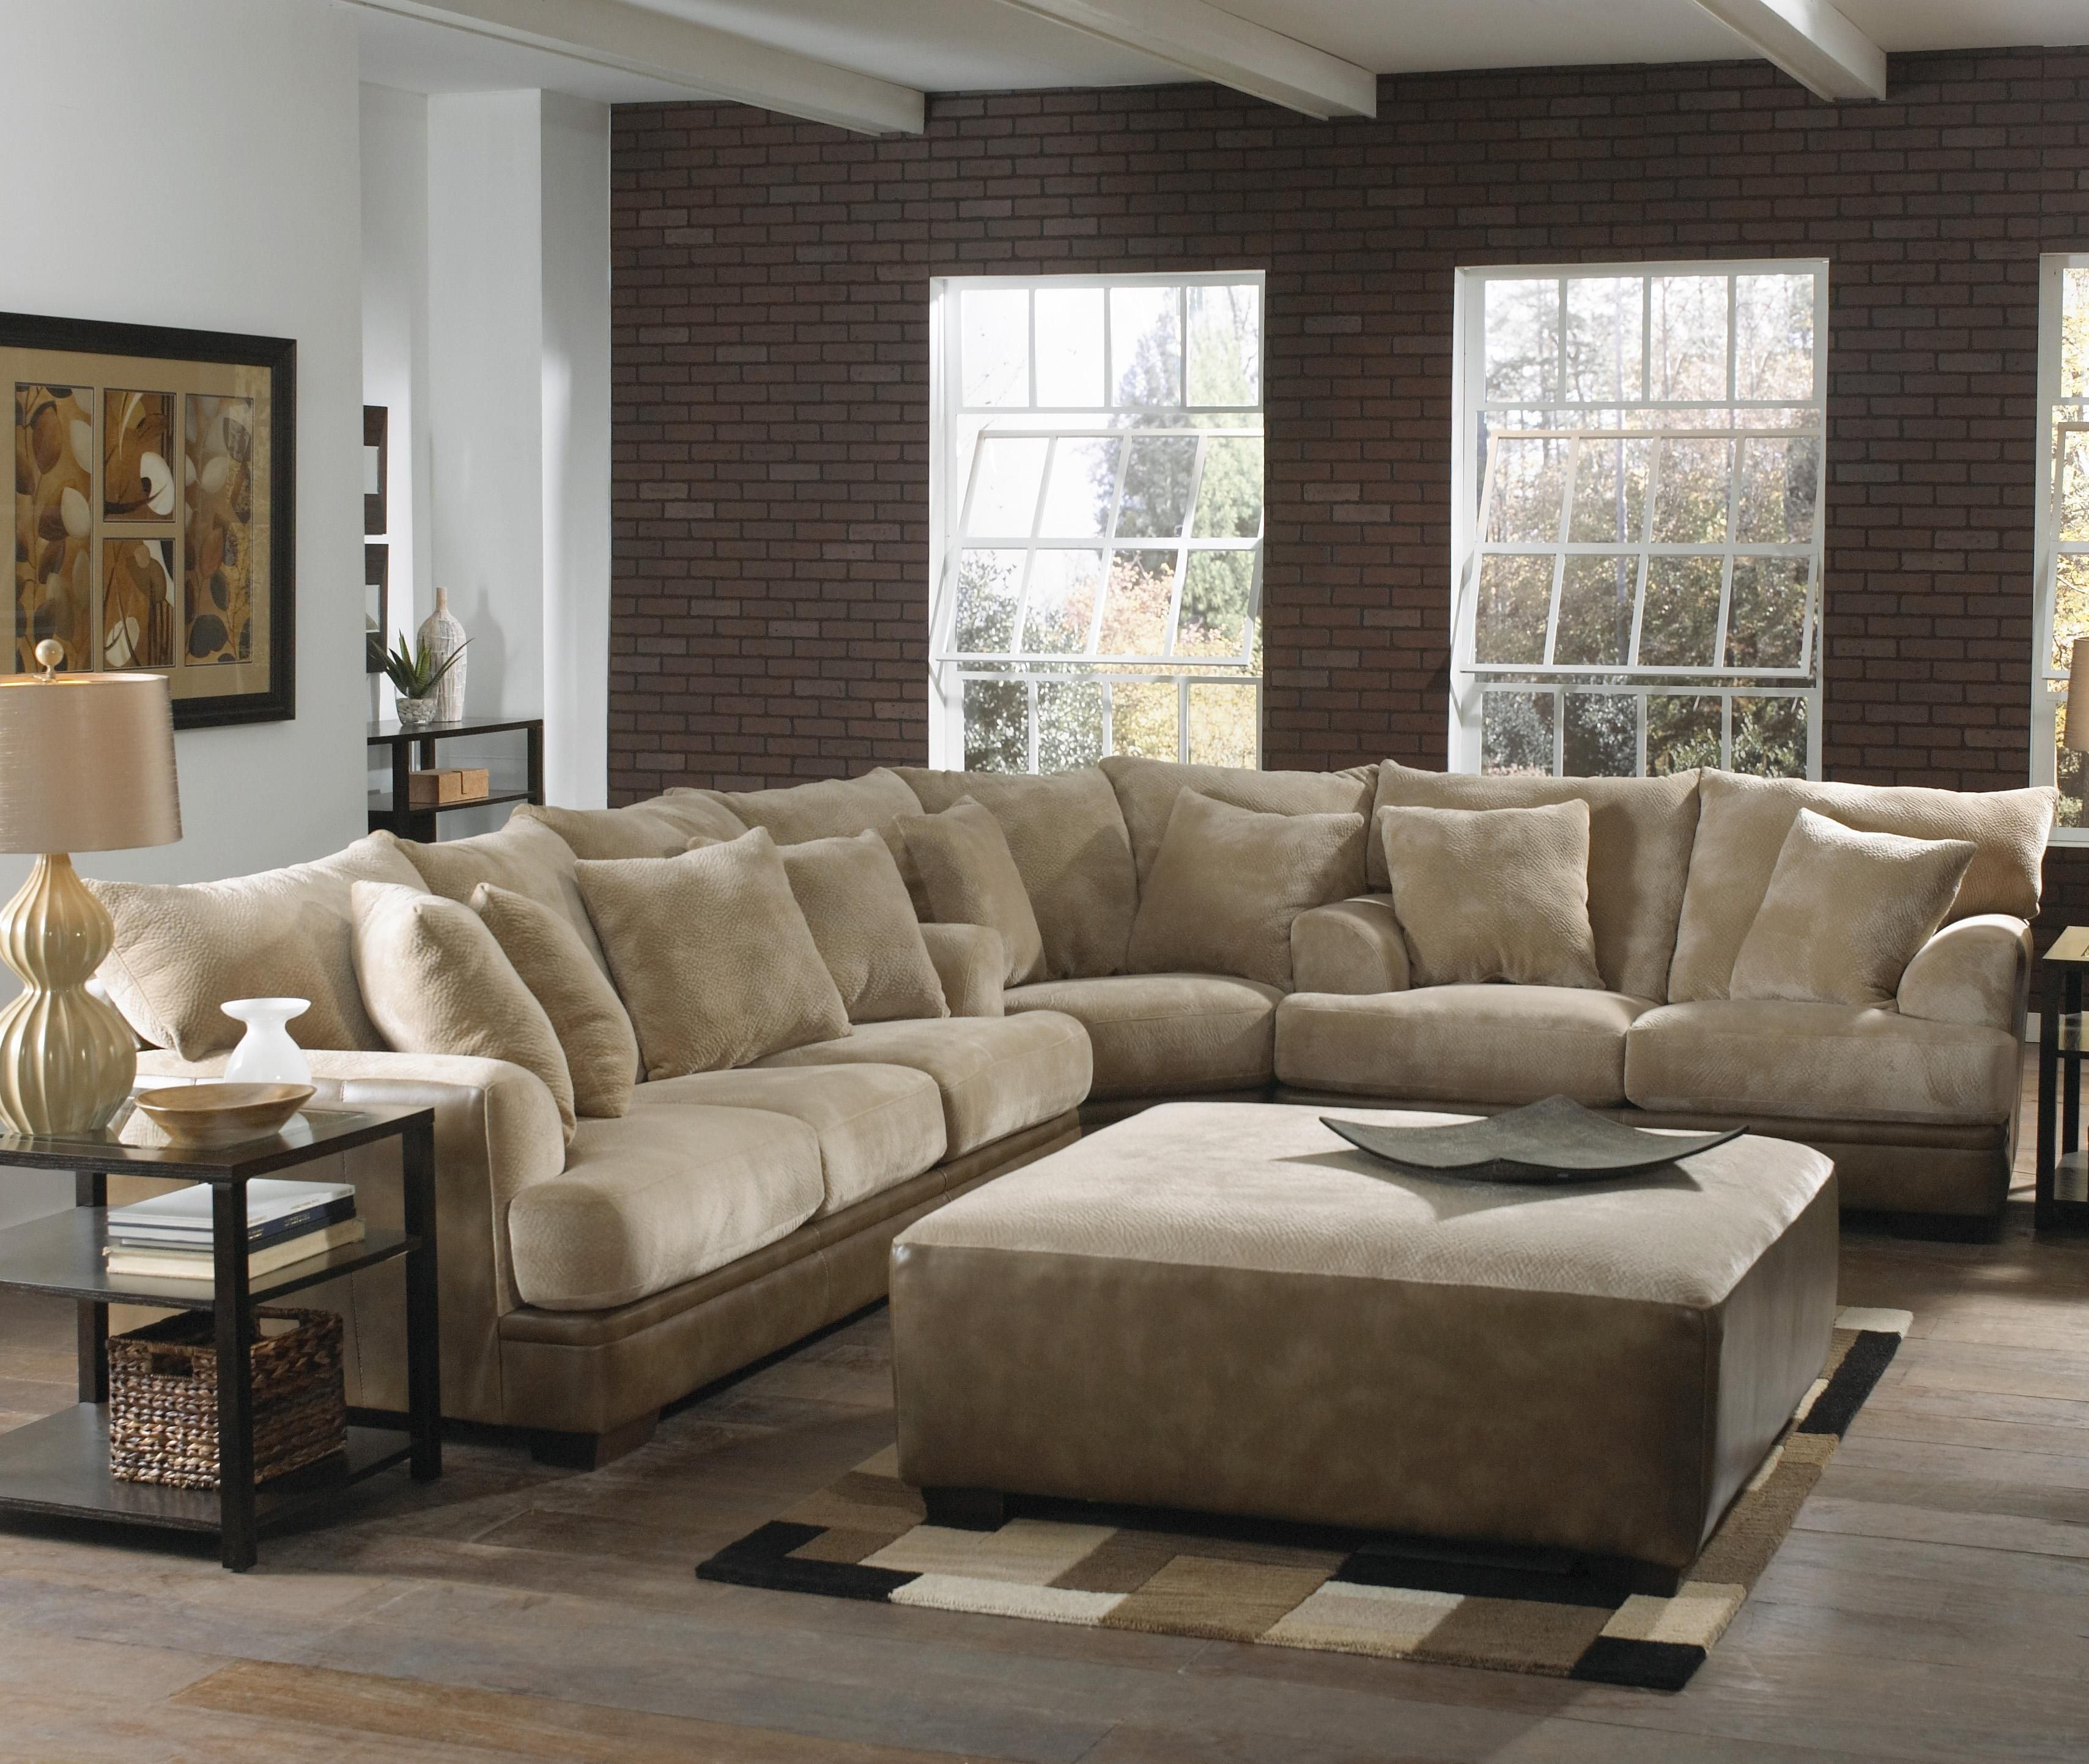 Barkley Large L-Shaped Sectional Sofa With Right Side Loveseat for Jackson Ms Sectional Sofas (Image 2 of 10)